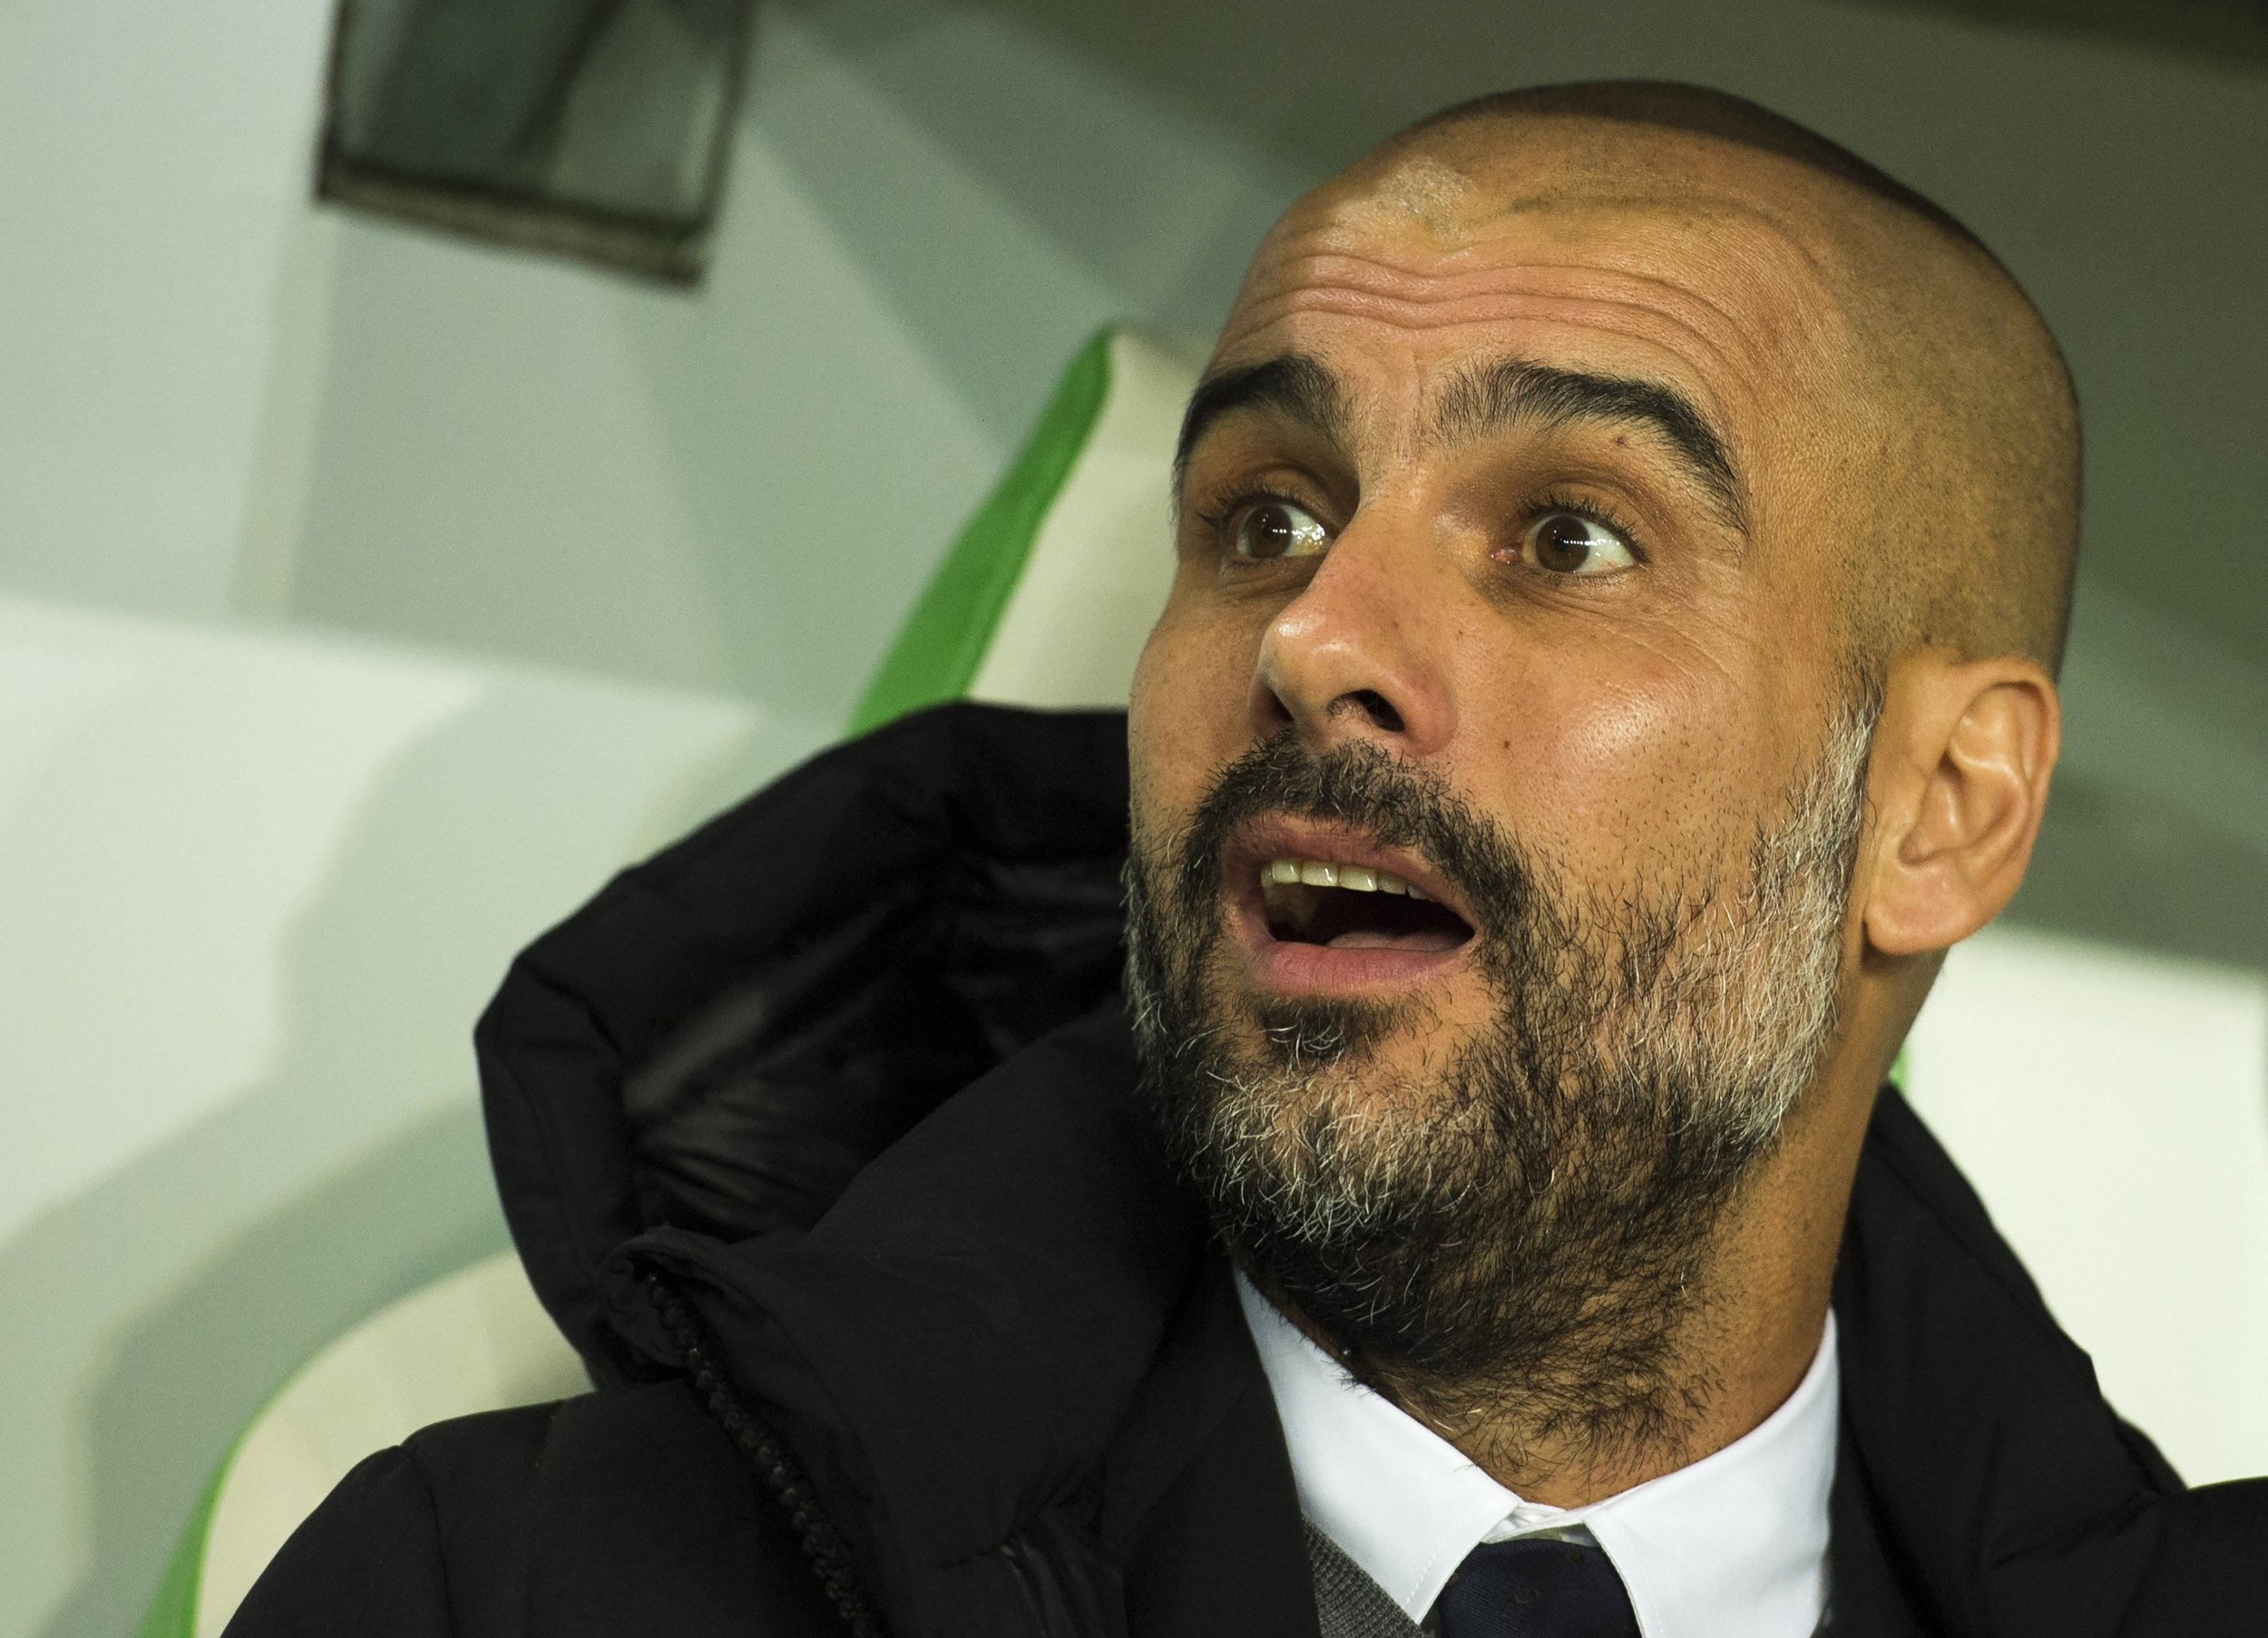 Pep Guardiola will take over as Manchester City manager in the summer.